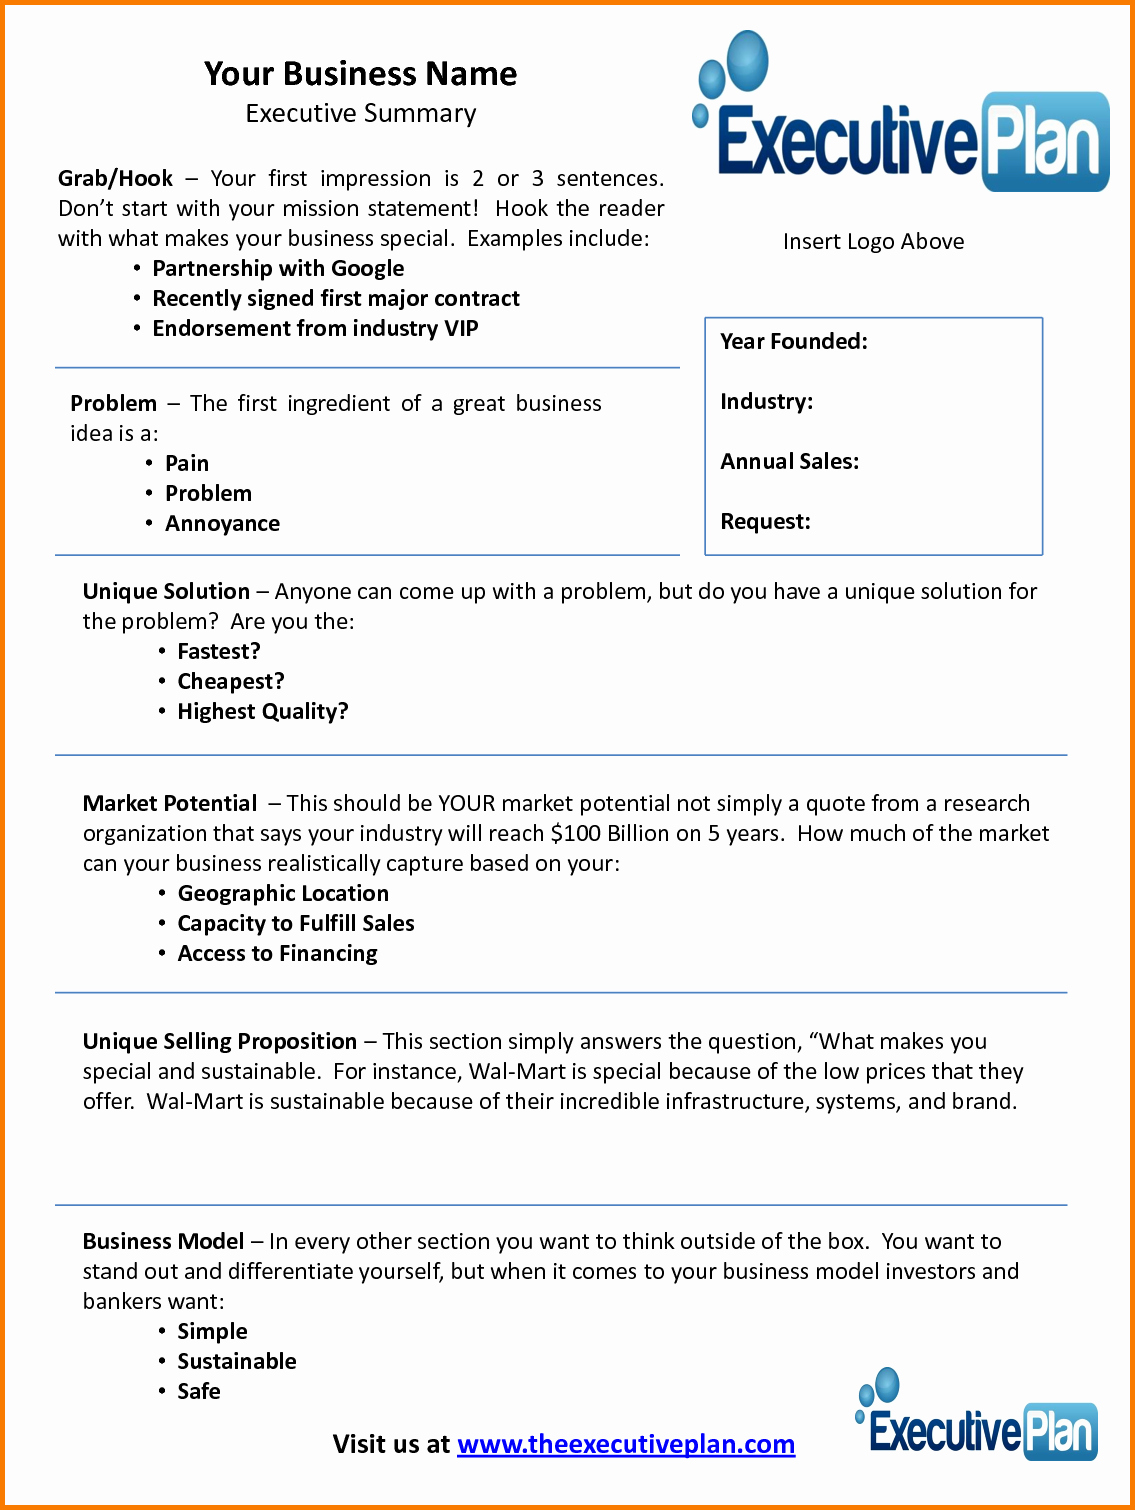 Real Estate Executive Summary Template Inspirational 6 Executive Summary Template